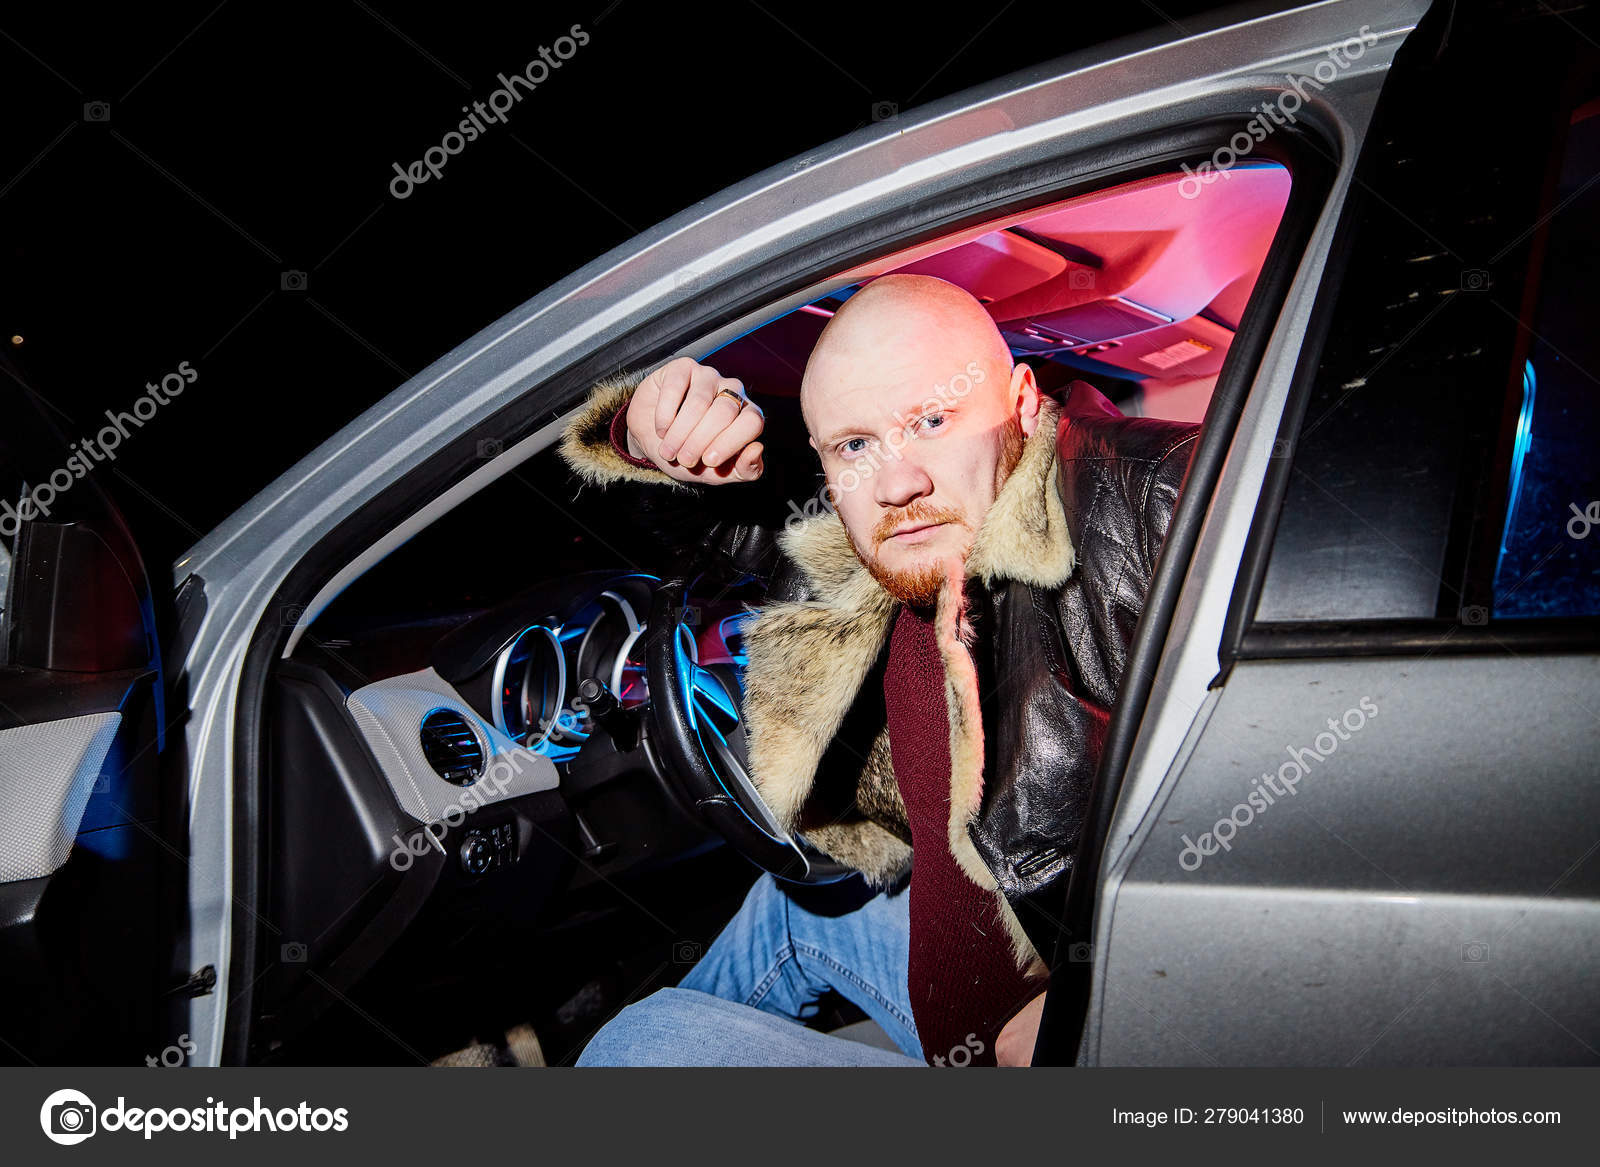 Male Driver In A Leather Jacket In The Car In The Dark Night Photo Shoot Stock Photo C Keleny 279041380